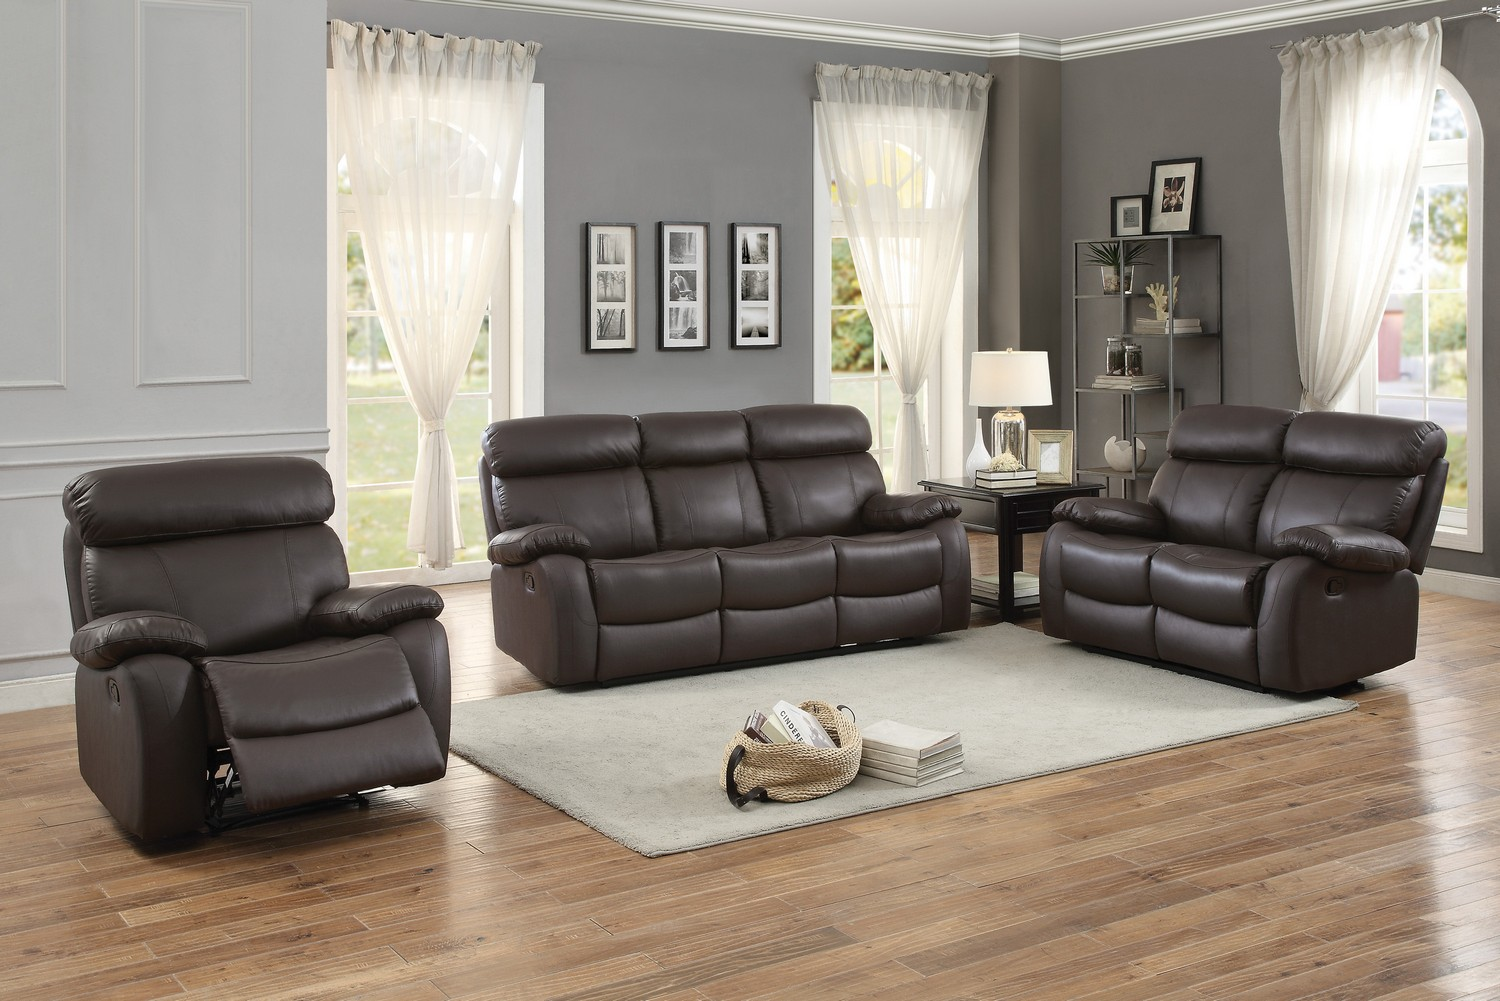 Homelegance Pendu Reclining Sofa Set Top Grain Leather